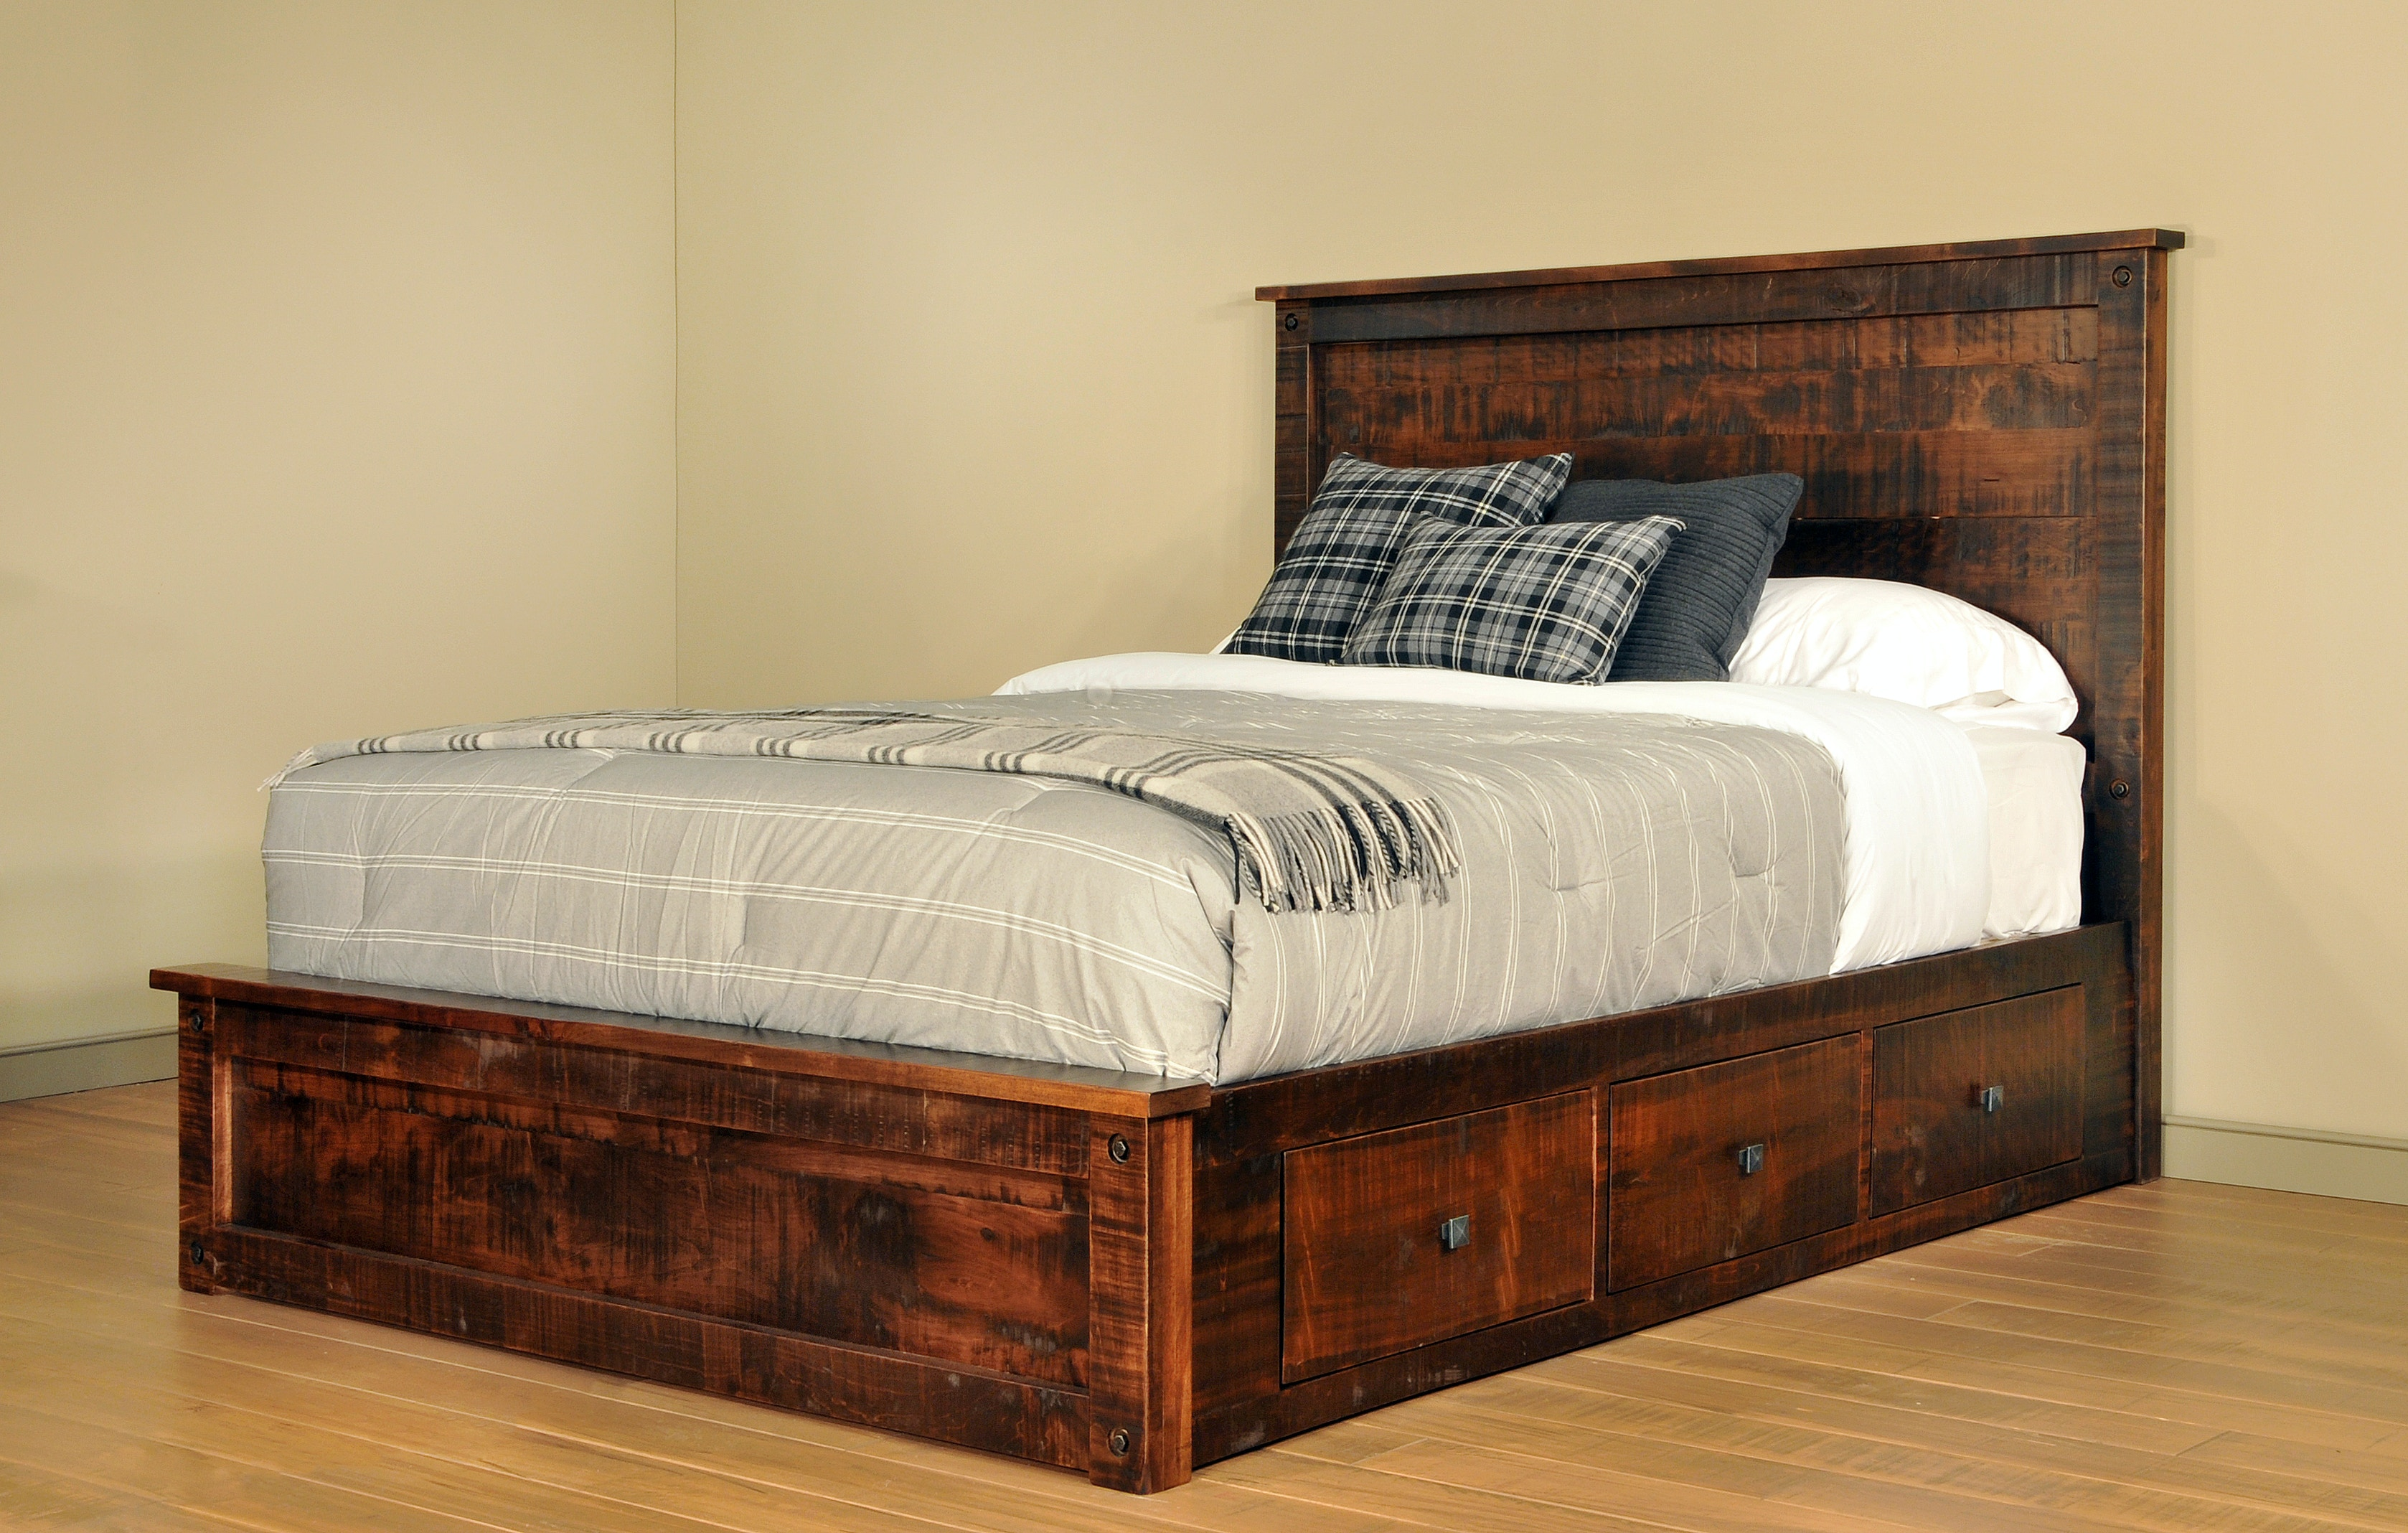 Ruff Sawn Bedroom Muskoka Bed S MKKK55483   High Country Furniture U0026 Design    Waynesville, Asheville And Hendersonville, NC